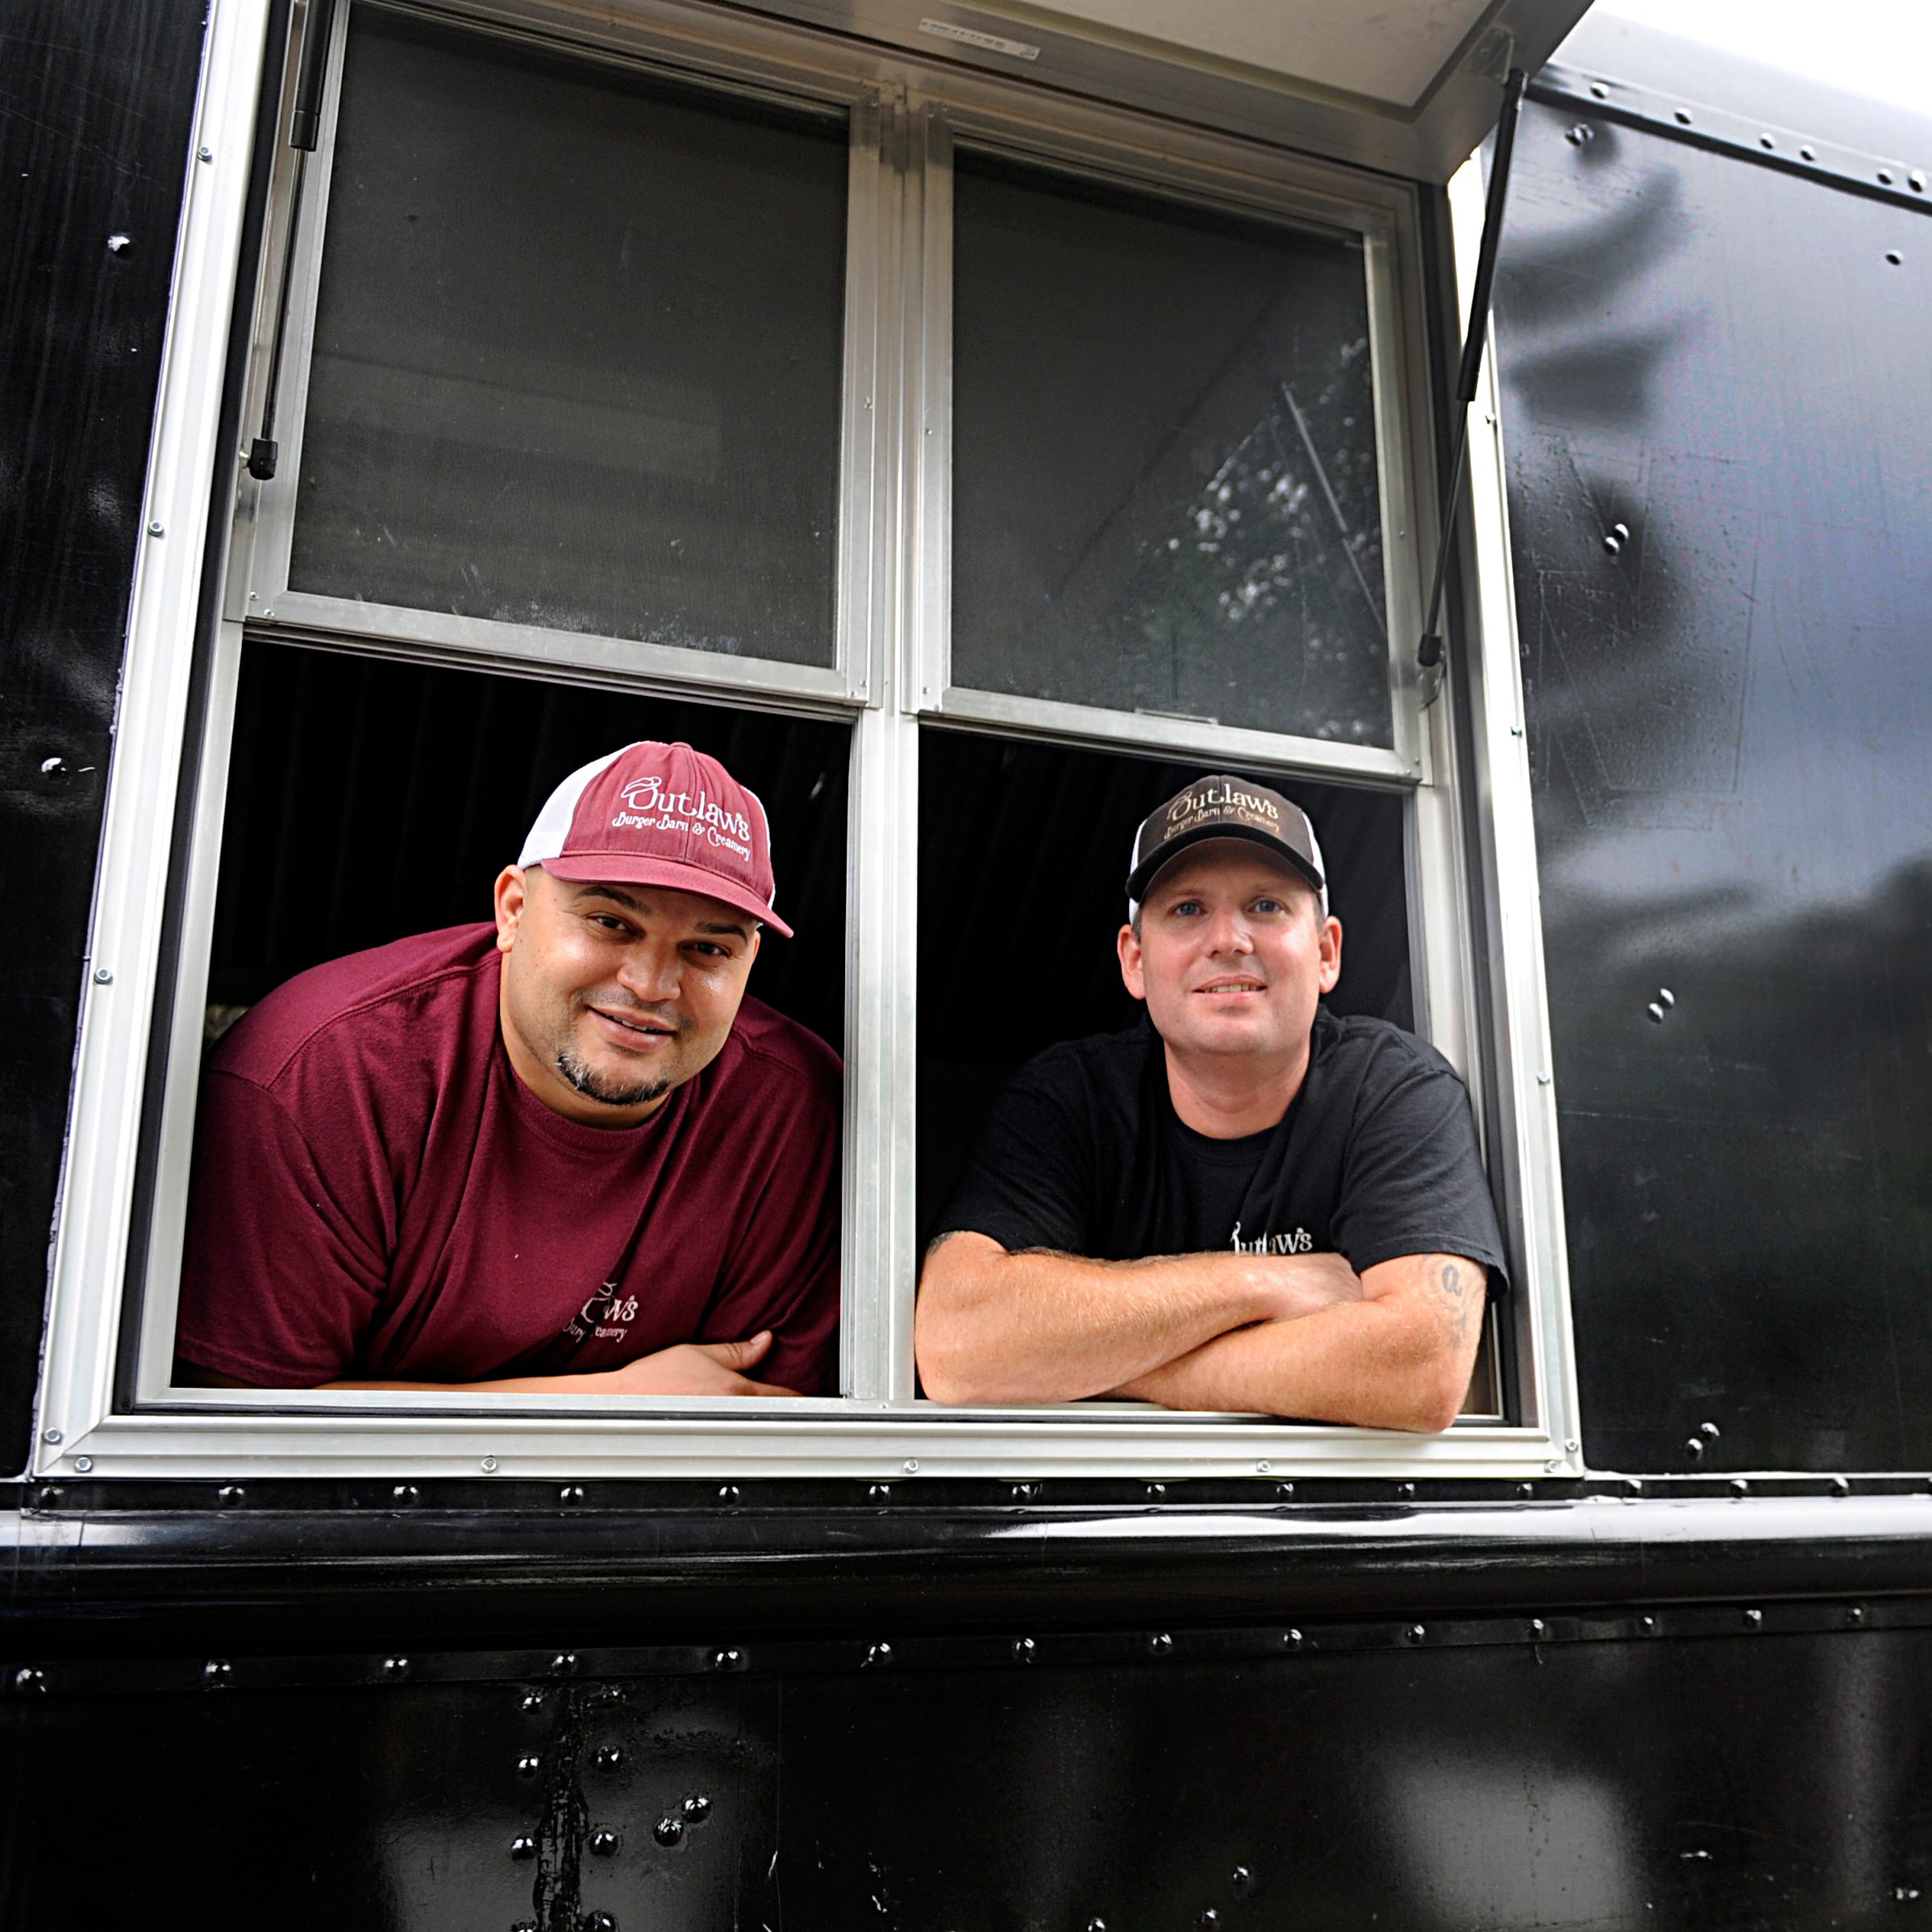 Outlaw's Burger Barn owner gives back to Vineland community with free meals